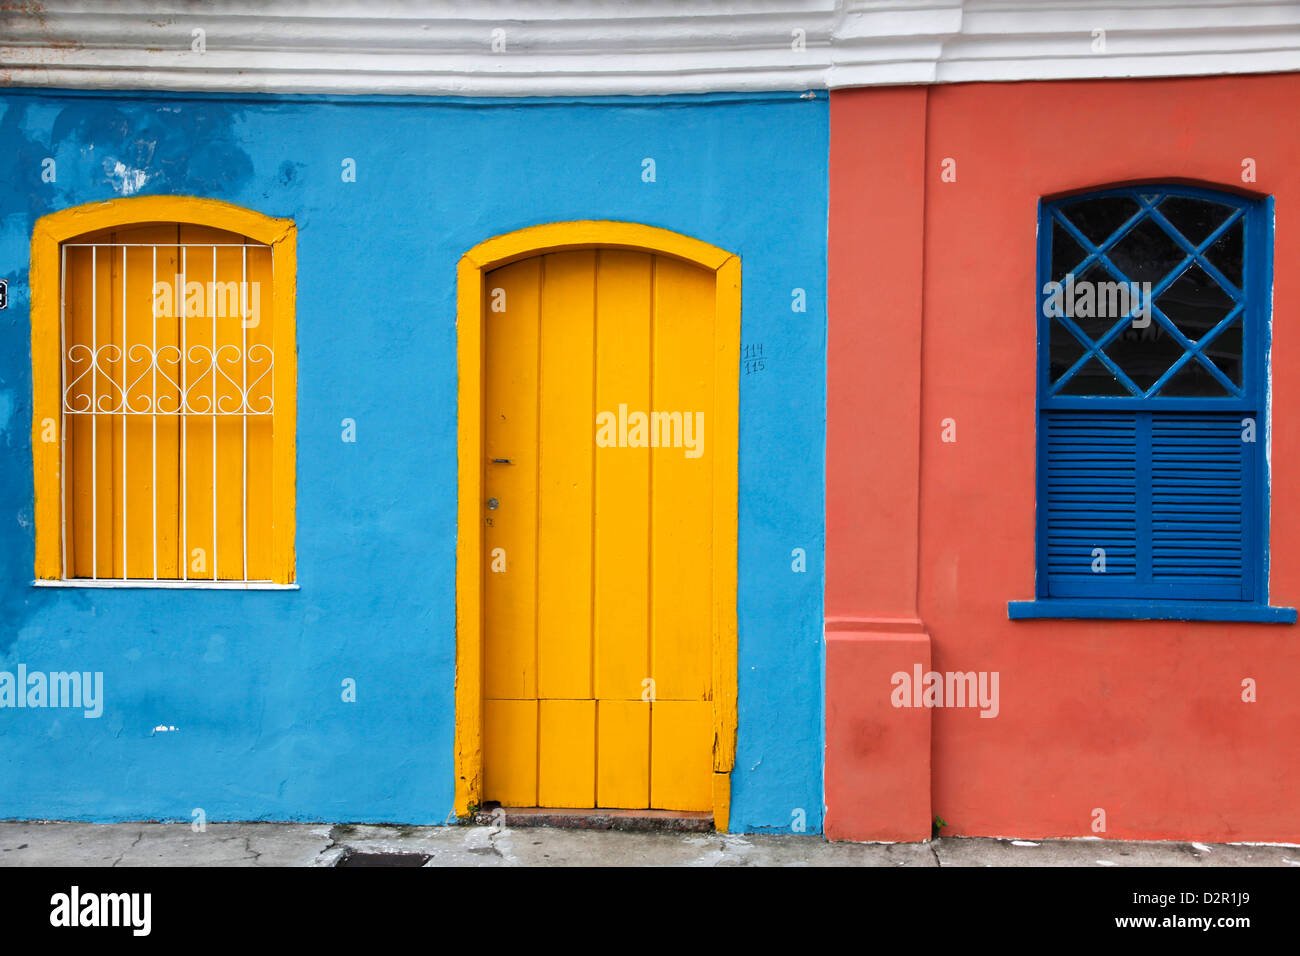 Colonial building at the old colonial city centre in the lower area, Porto Seguro, Bahia, Brazil, South America - Stock Image